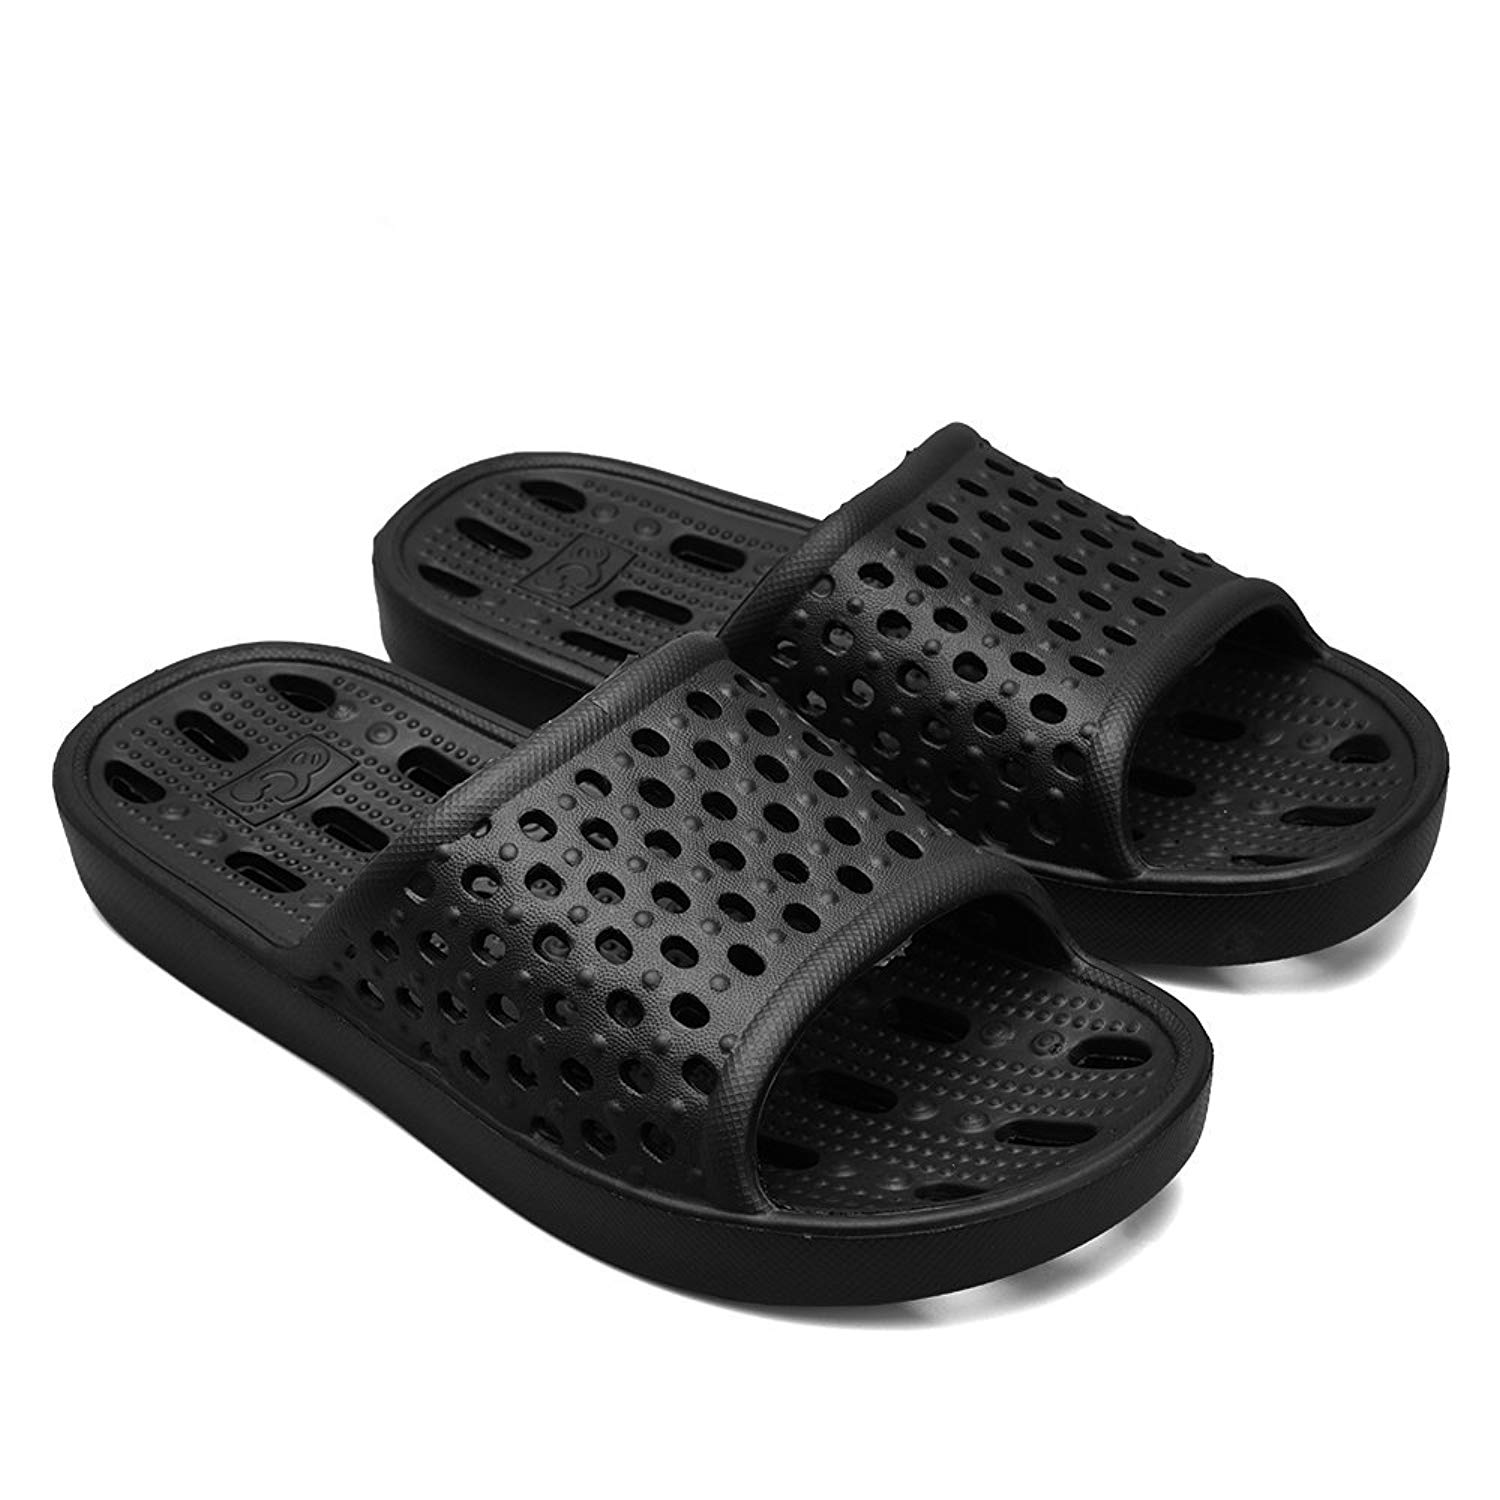 467b3e1ccc65 Get Quotations · Qiucdzi Bath Slippers Women and Men Summer Pool Shower Shoes  Breathable Non Slip Indoor House Sandals